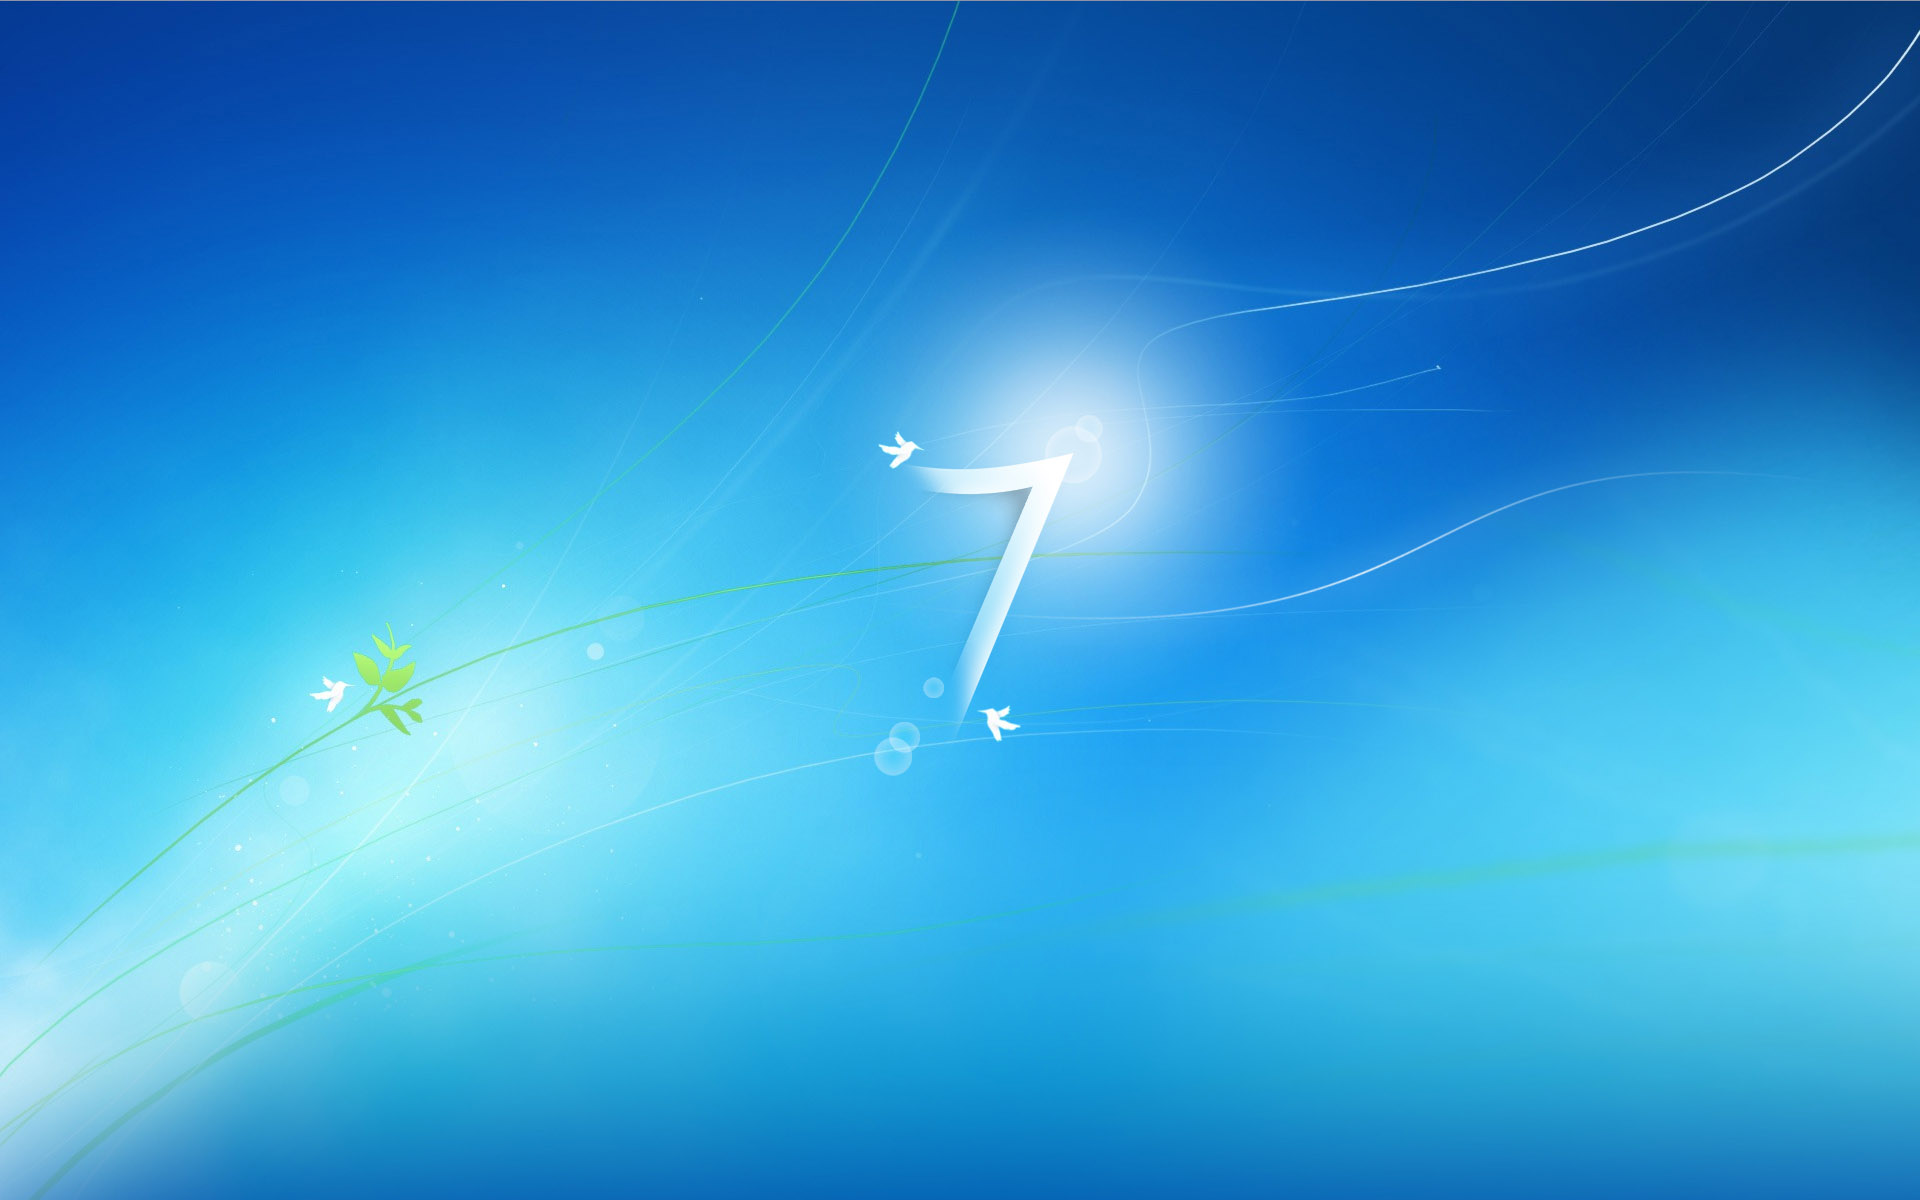 Windows 7 Wallpapers Backgrounds Hd 05